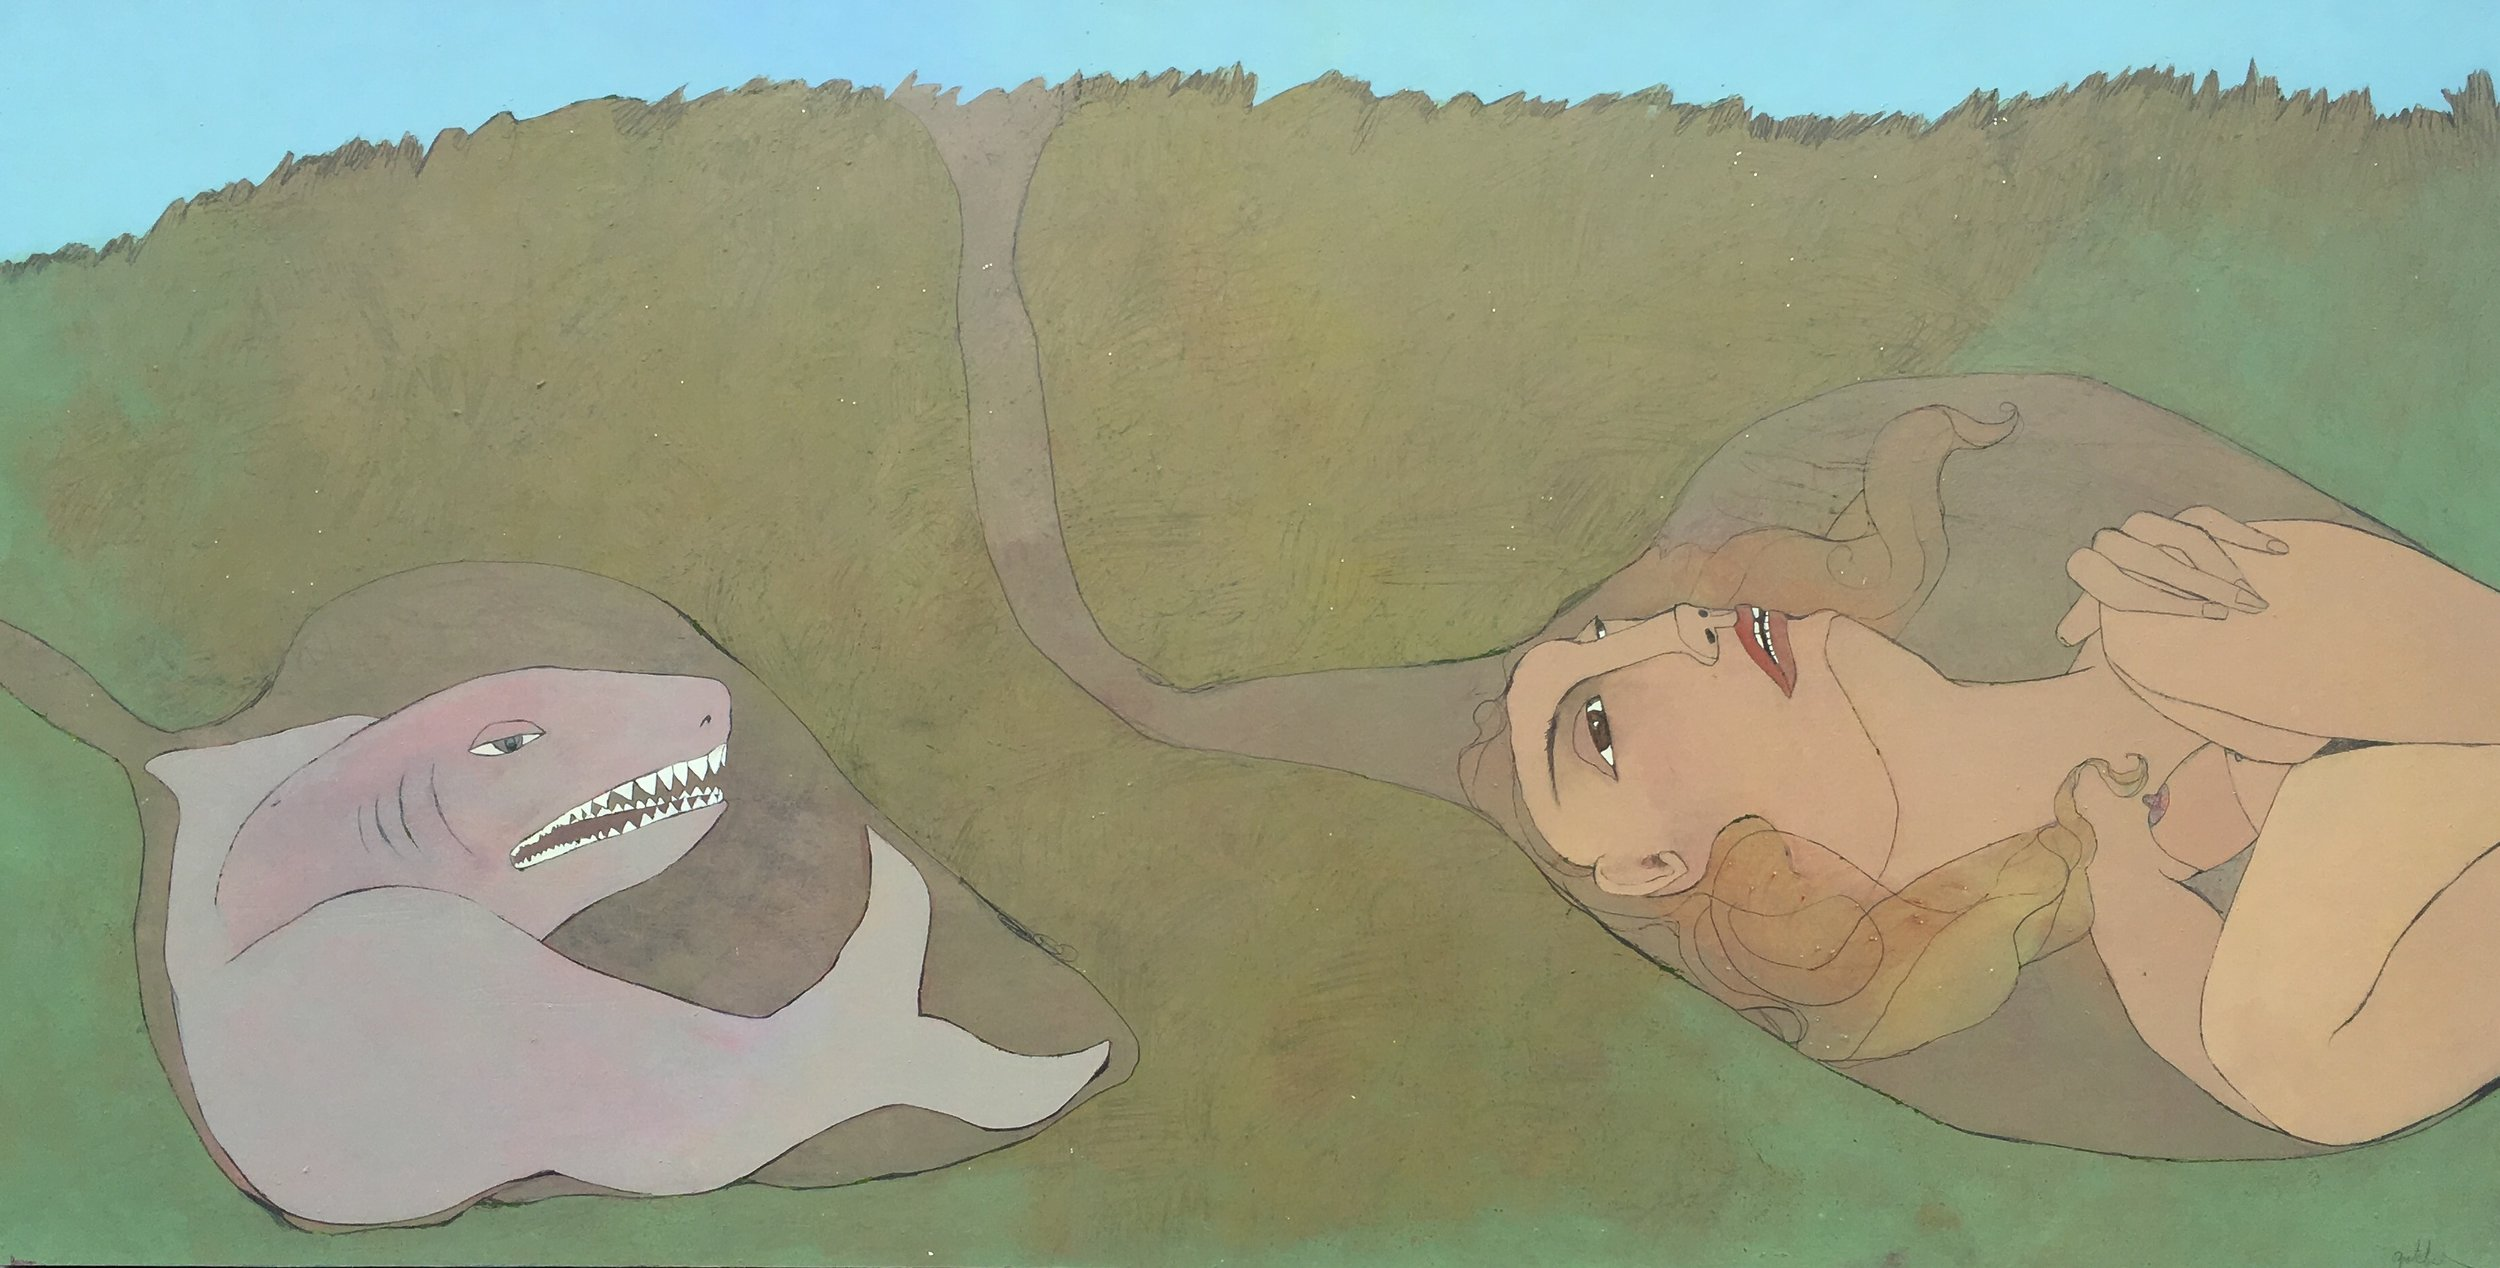 bait. don't get me started. do i empathize with this shark? i guess so. but really, the better question is,do i placate him? of course i do, i'm a woman; how do i please this shark, how do i mollify him, how do i stay here in my place away from him without upsetting the equilibrium of the entire earth.